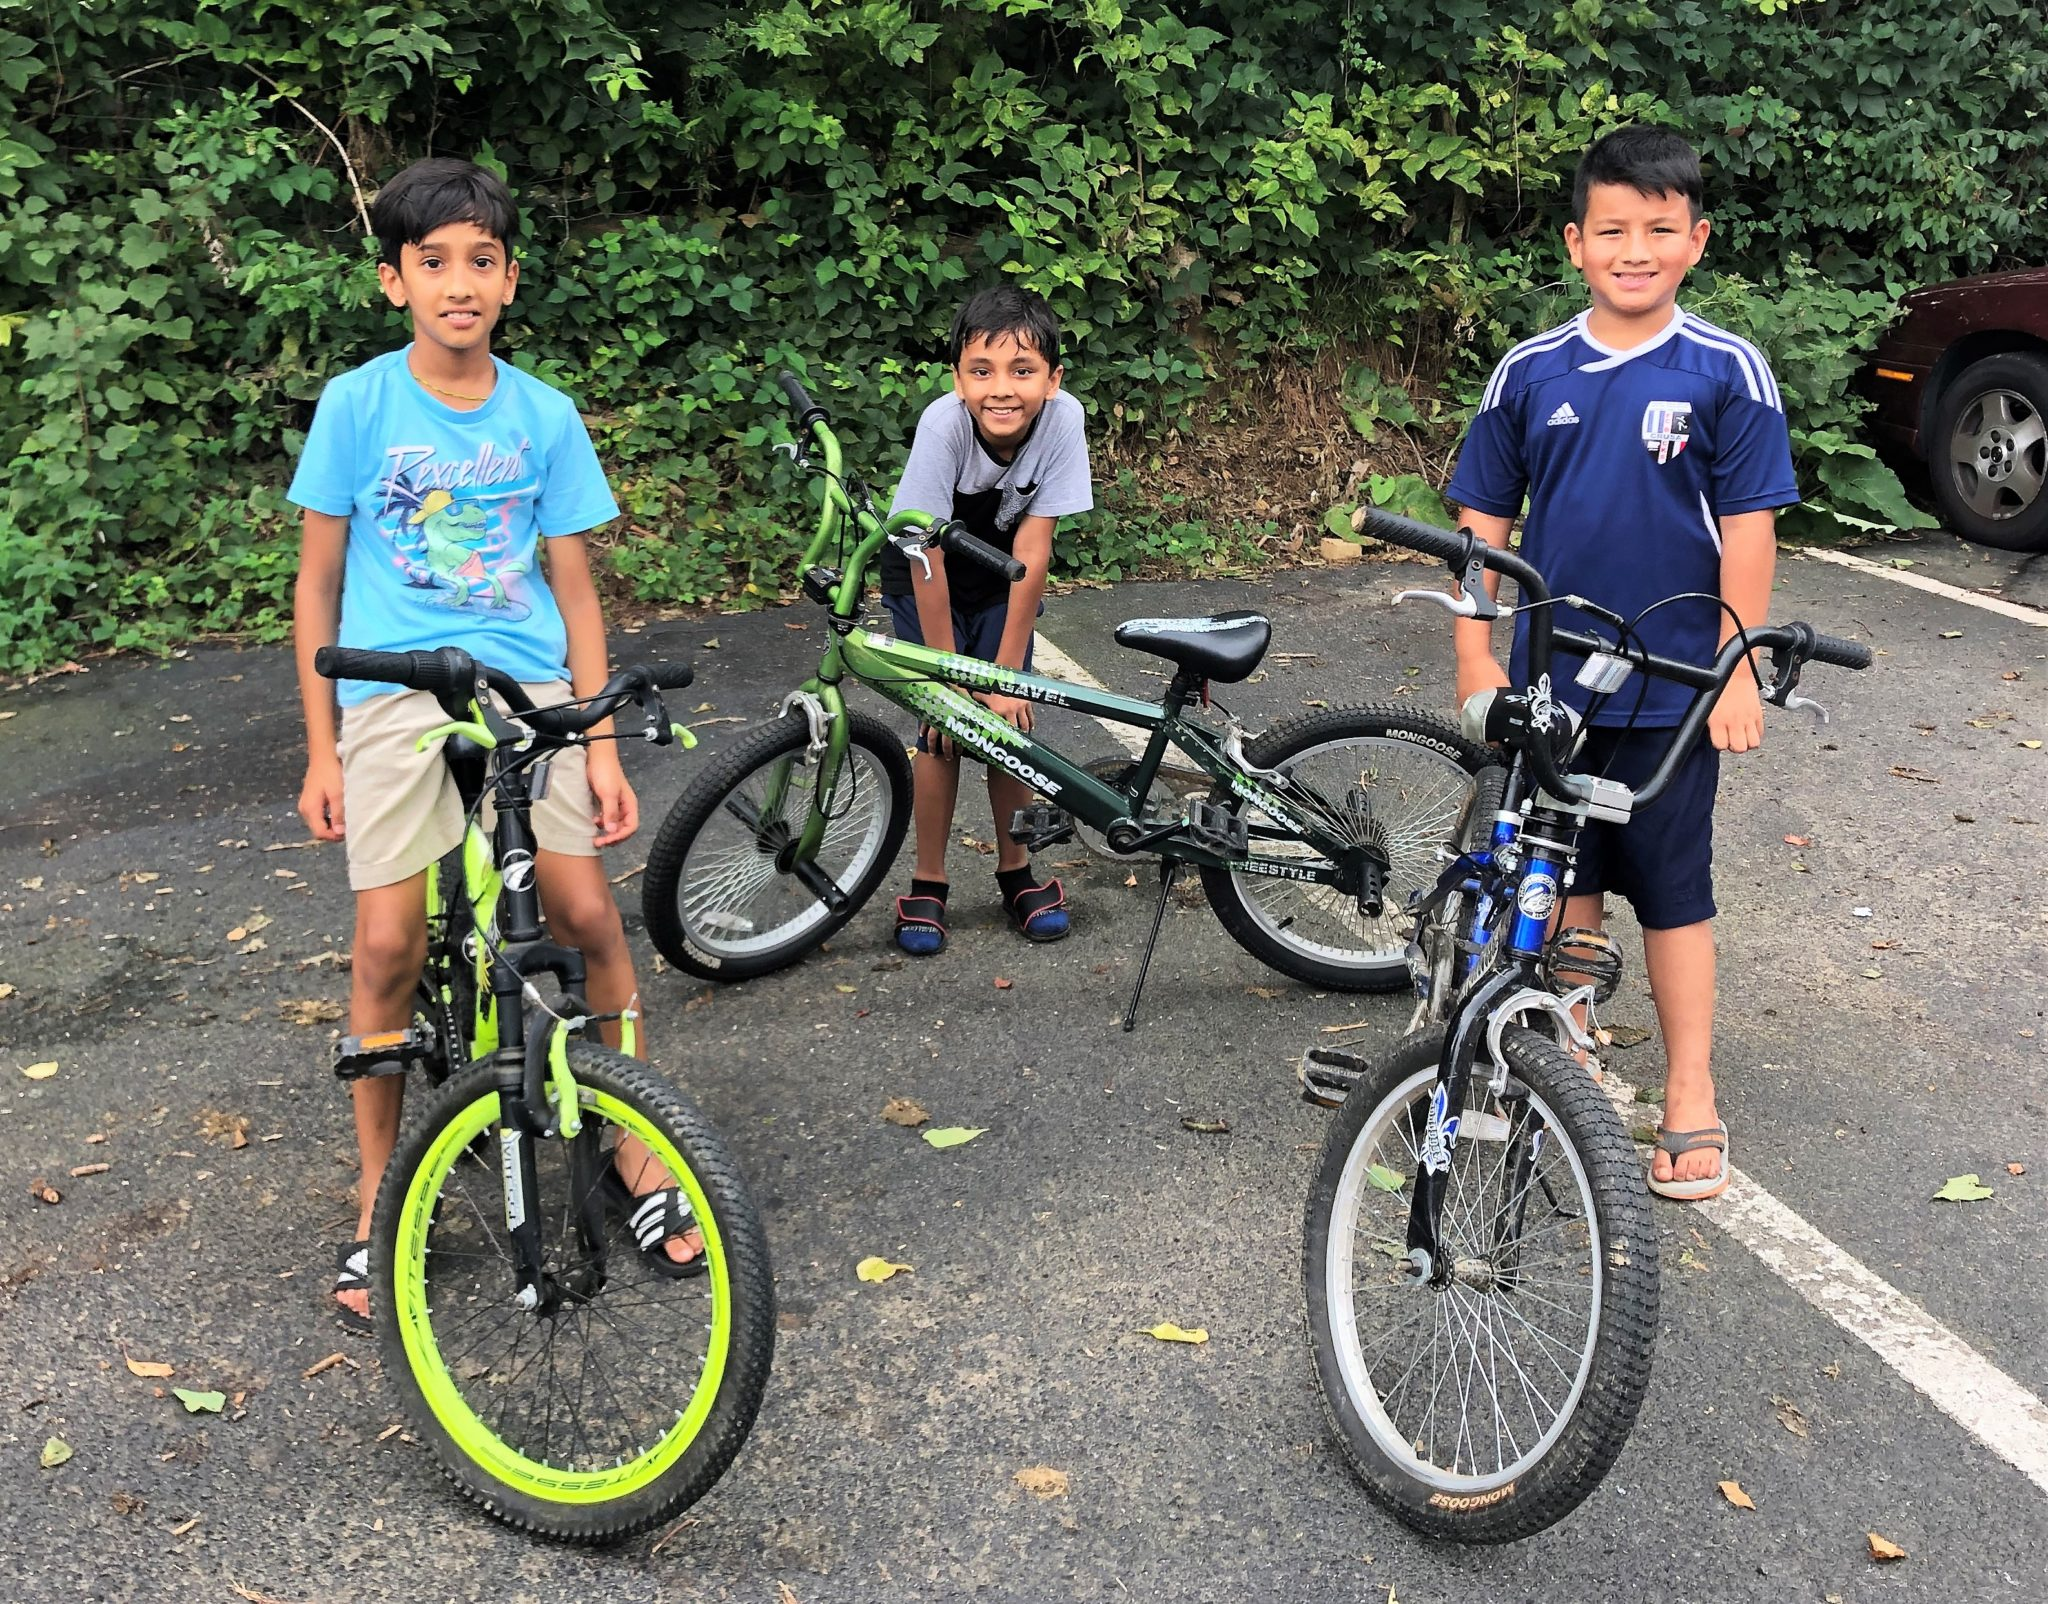 Police bike donations (4) – Penn Manor School District